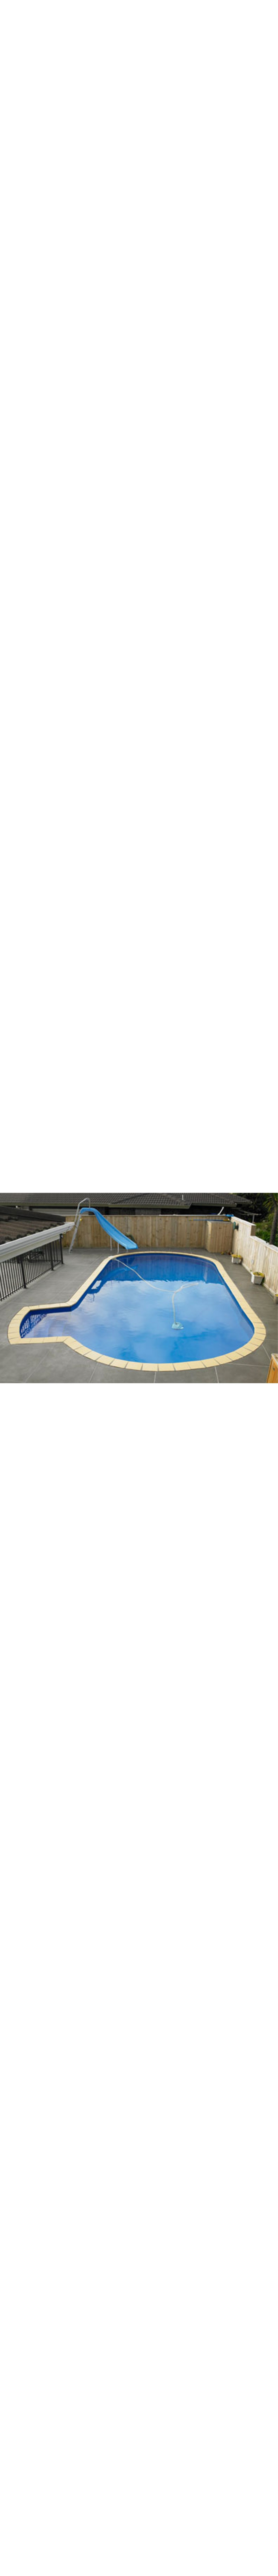 A Lido Swimming Pool - installed in-ground and finished with tiles and walk out stairs (optional extra)